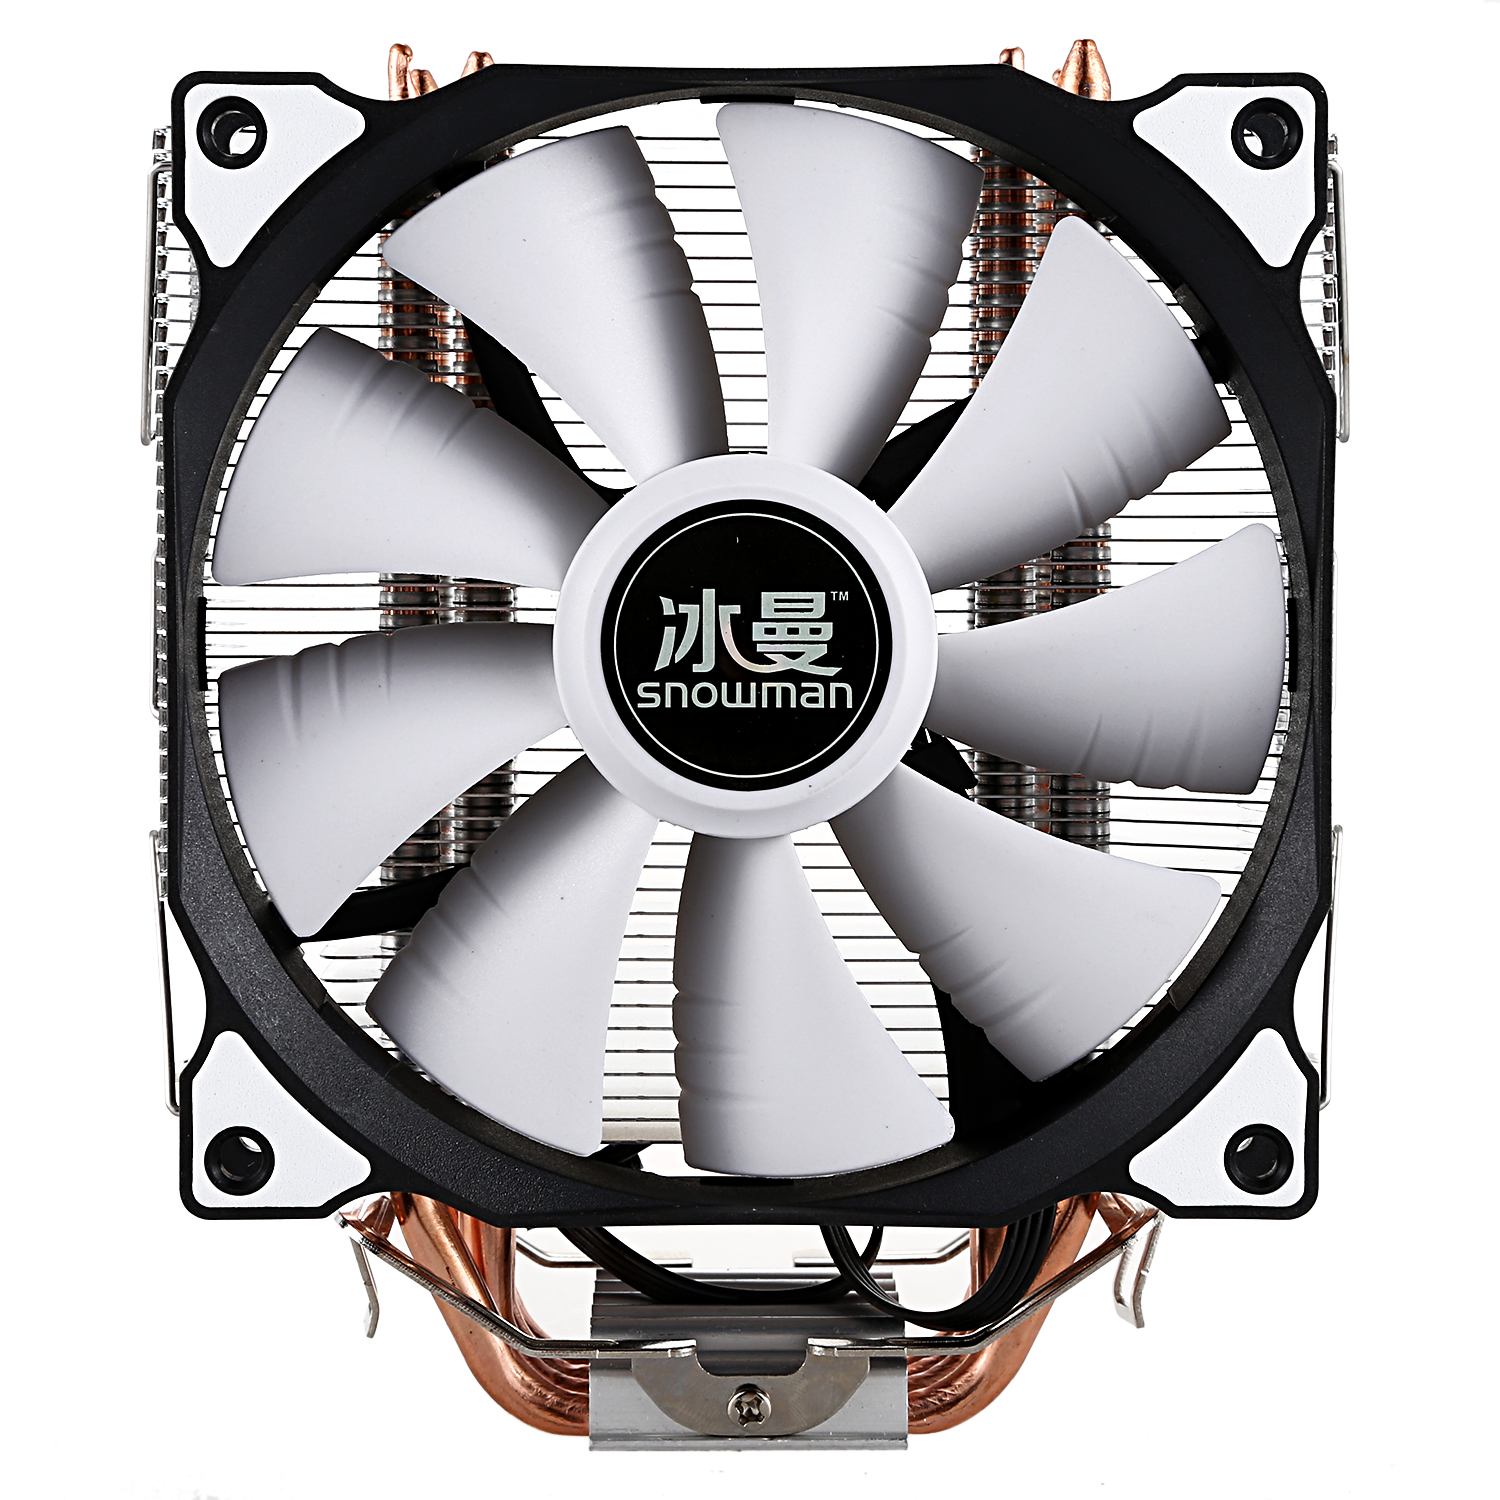 SNOWMAN CPU Pwm-Fans Cpu-Cooling-Fan Cooler-Master Freeze-Tower 5-Direct-Contact-Heatpipes